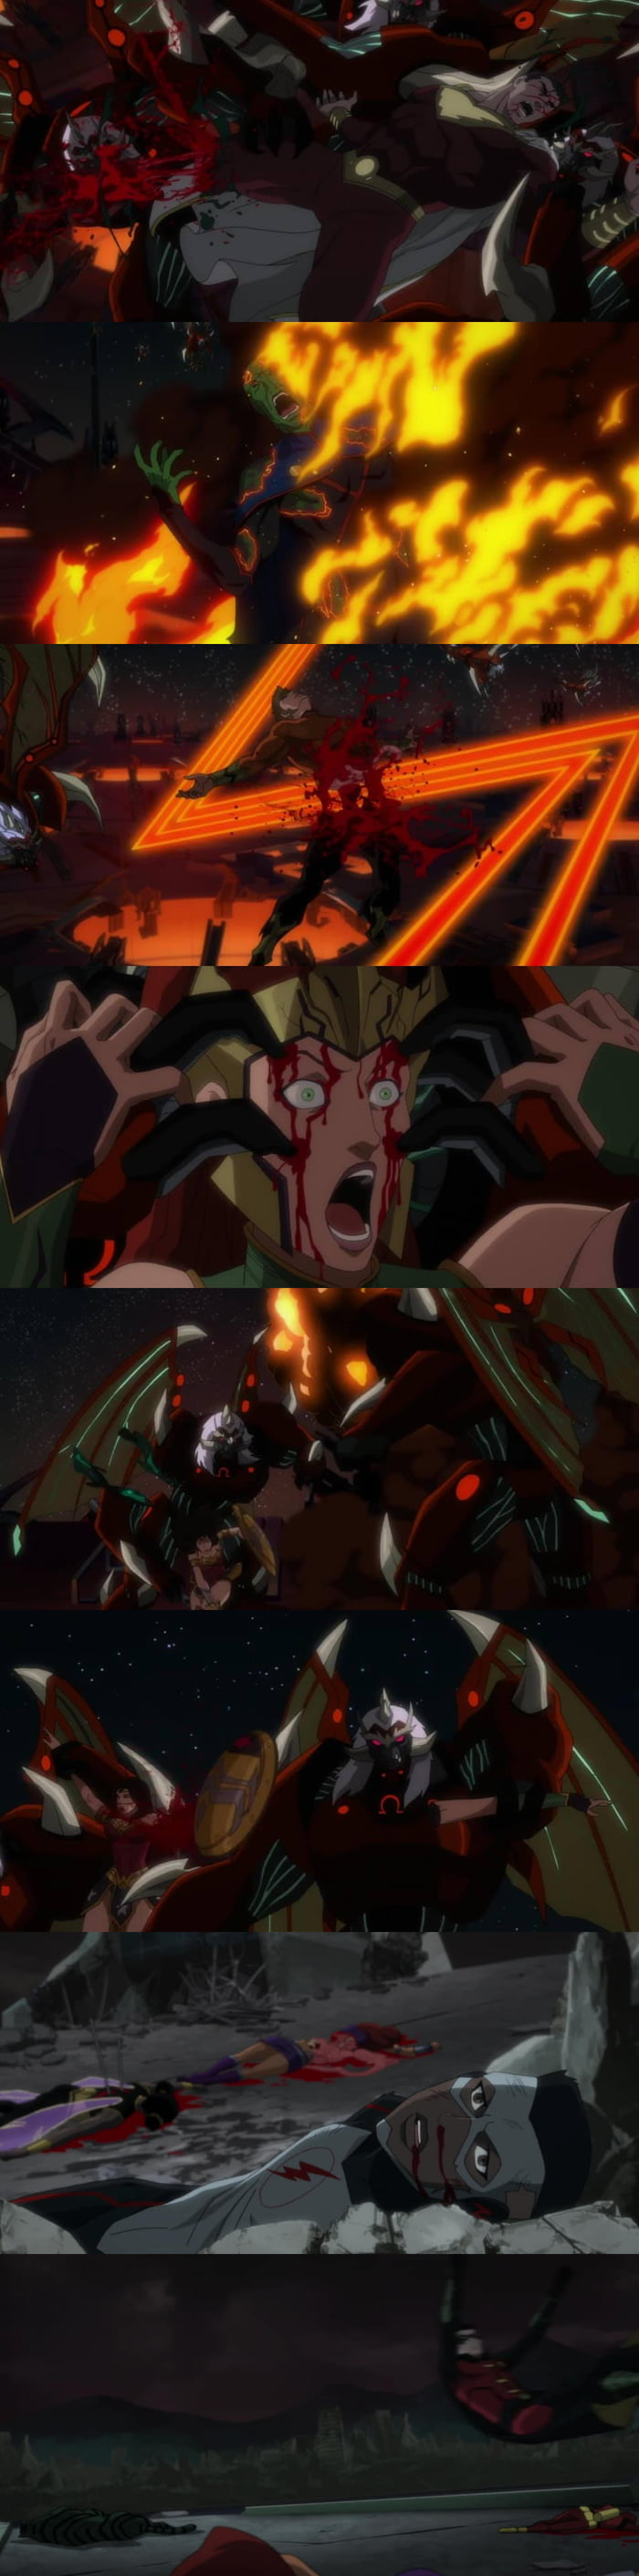 Justice League Dark Apokolips War Is What Should Have Been The Live Action Movie That Wb Created 9gag